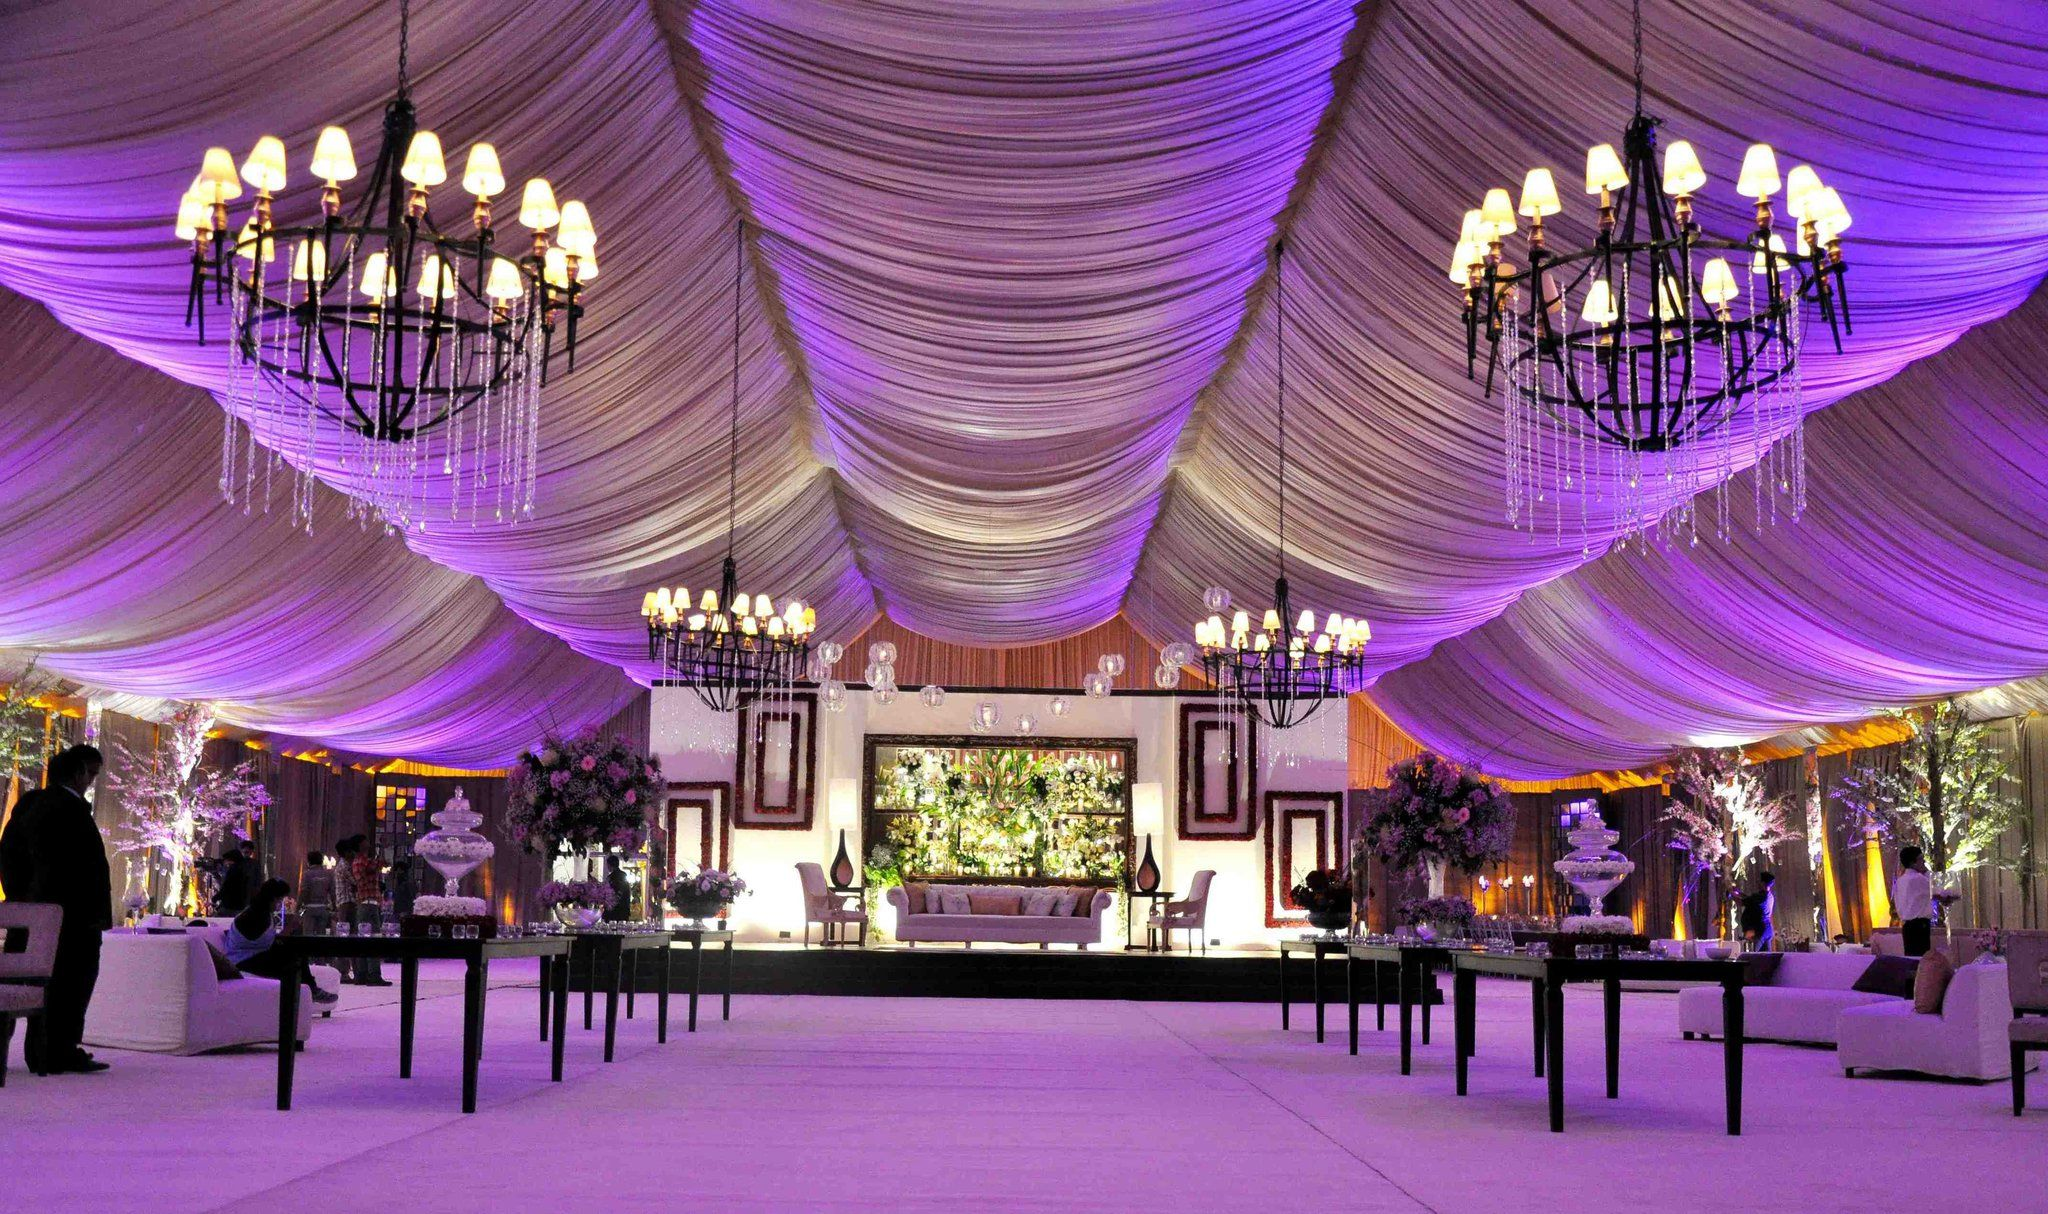 The imperial banquet marquee clifton and dha karachi wedding the imperial banquet marquee clifton and dha karachi junglespirit Choice Image